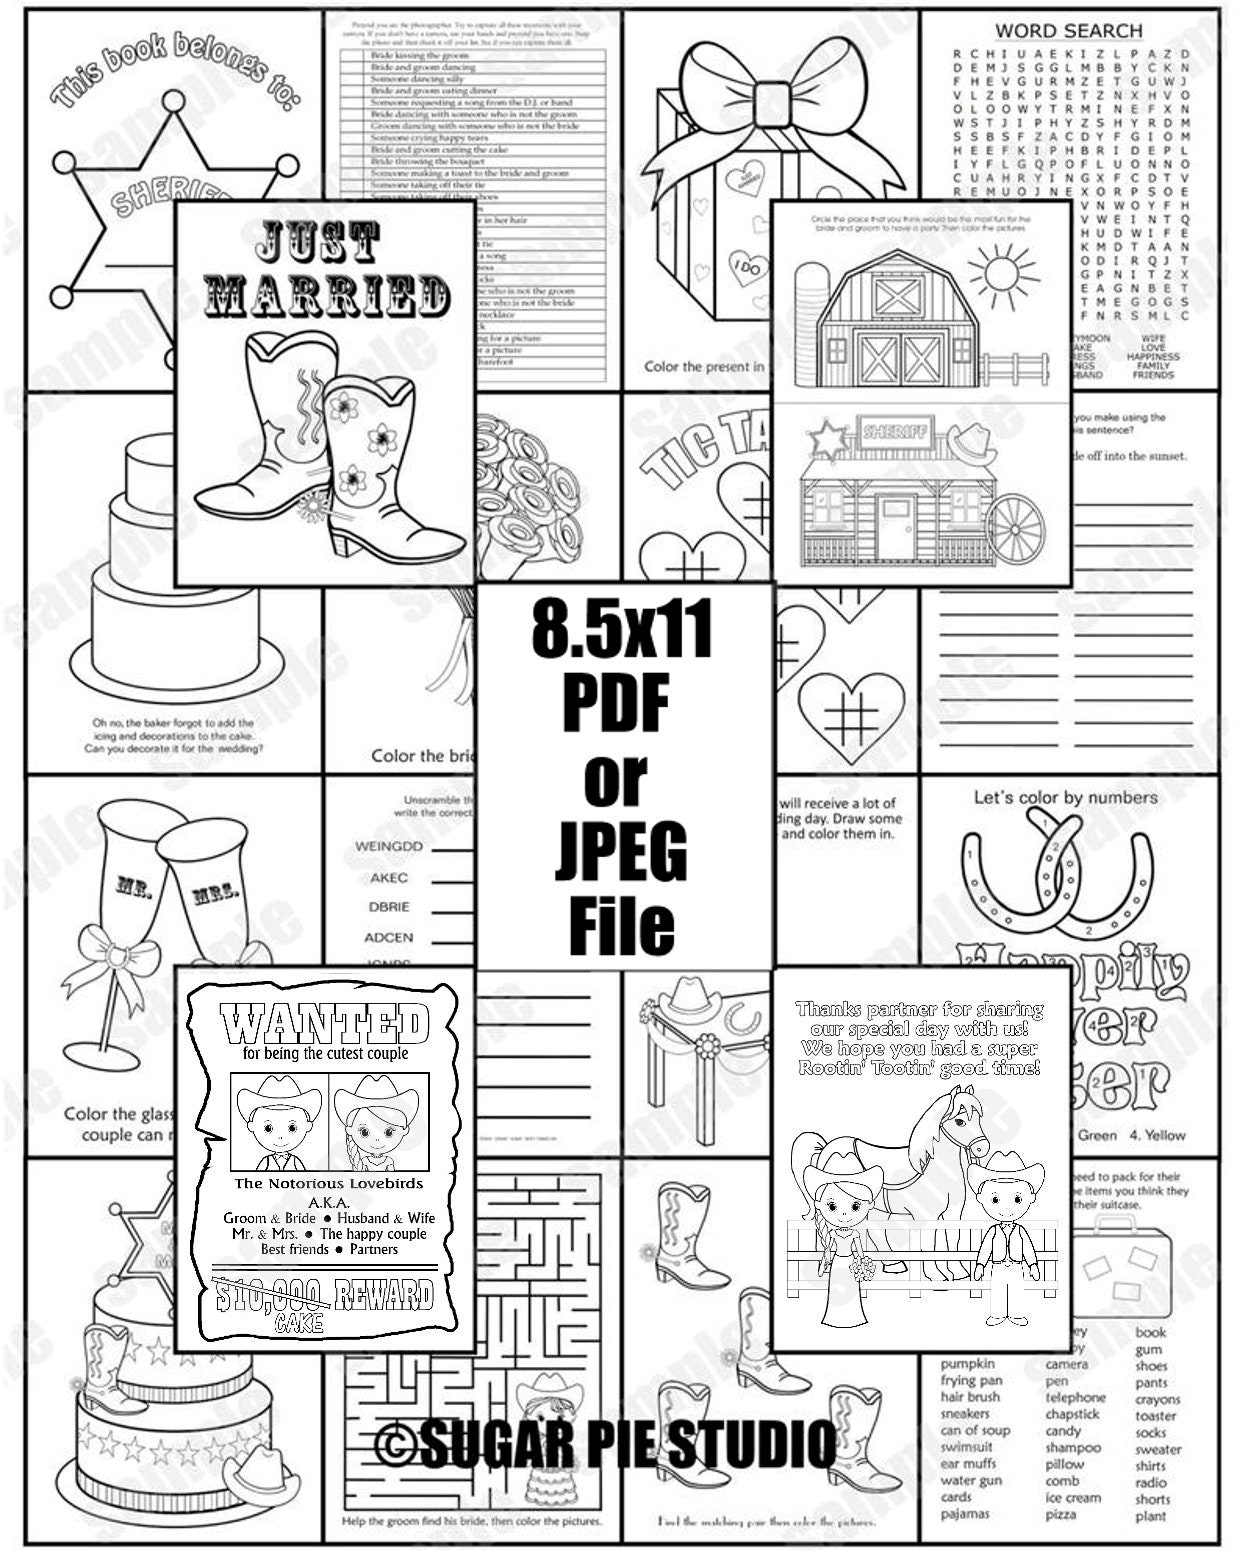 Country Western Wedding Coloring Activity Book Printable